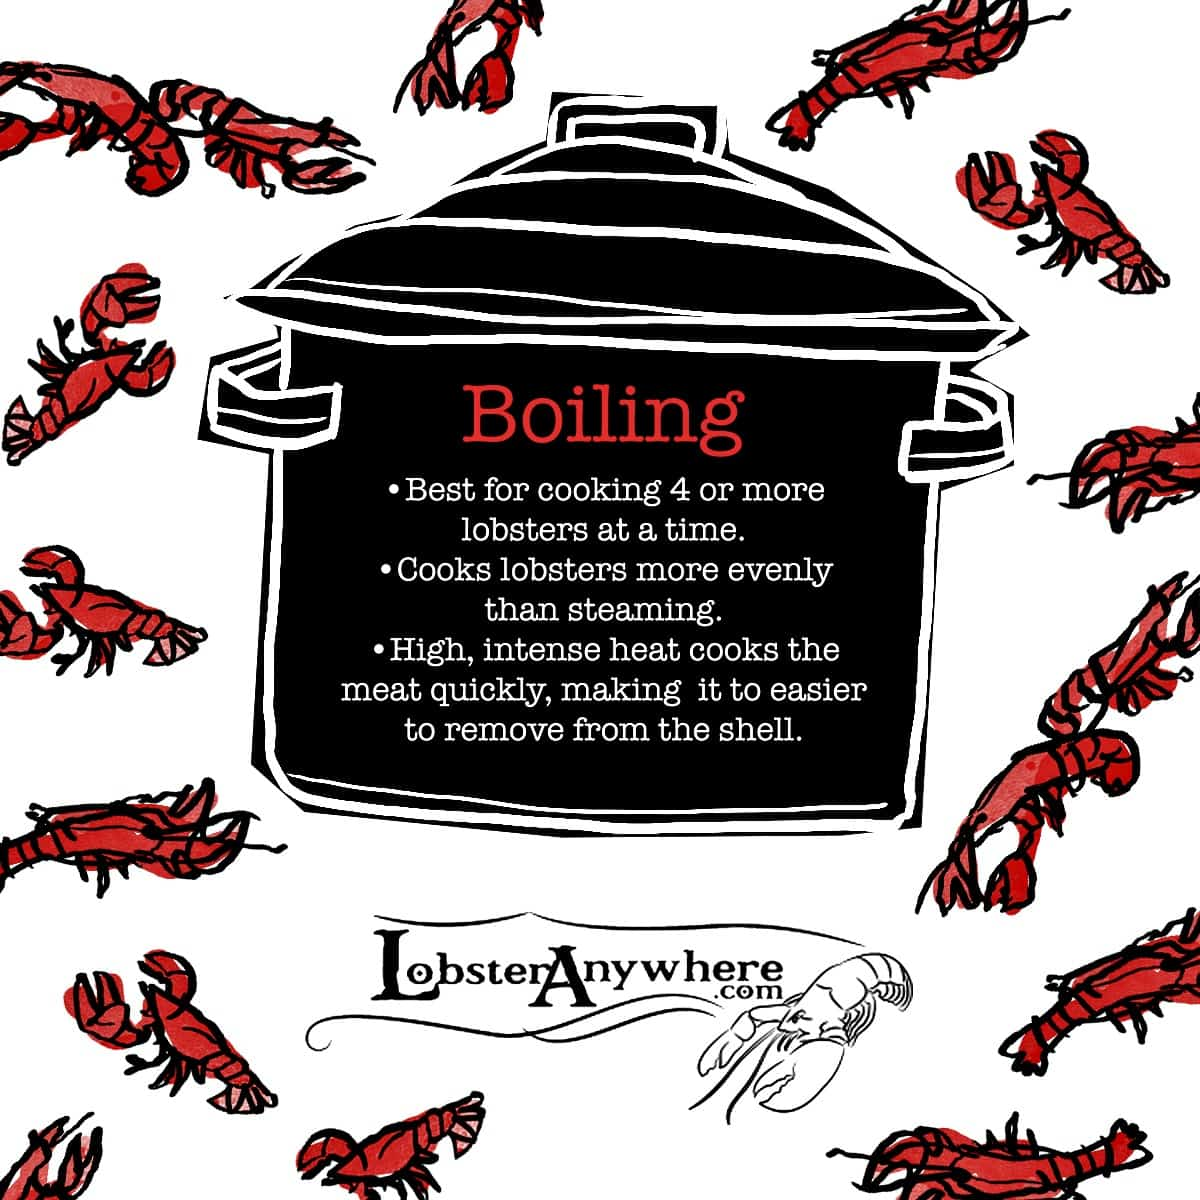 How to Boil Live Lobster